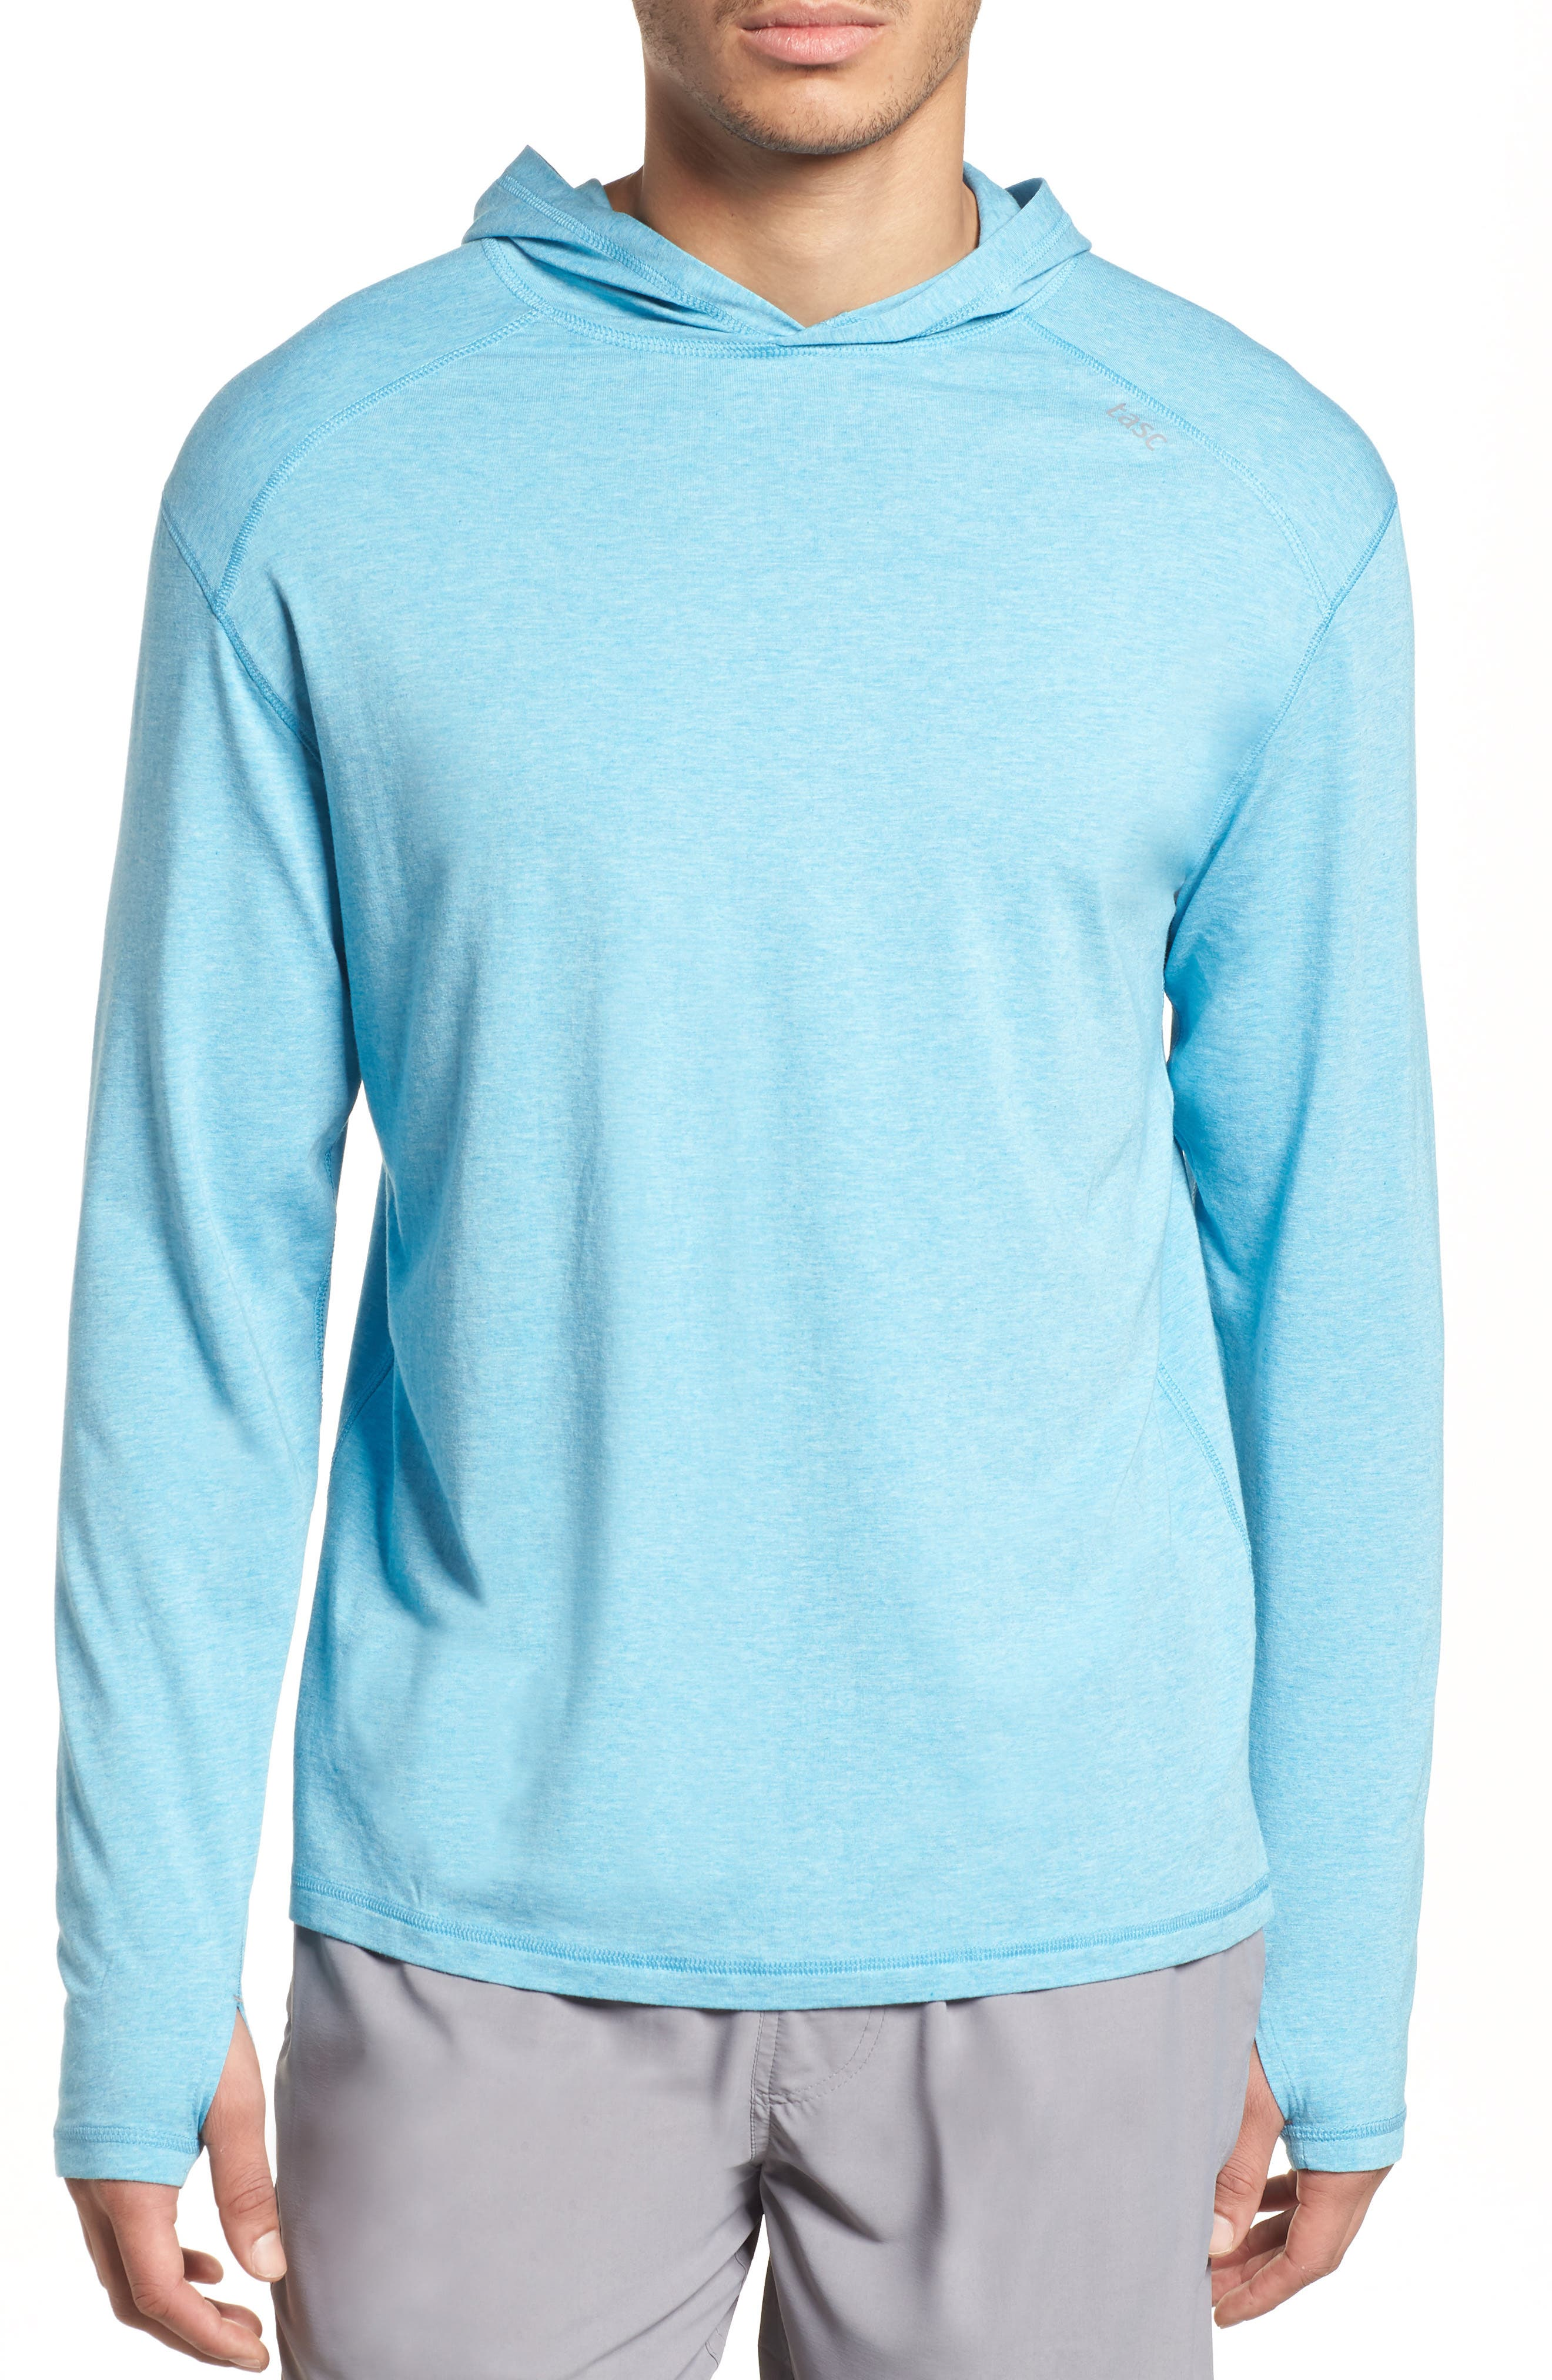 Carrollton Regular Fit Pullover Hoodie,                             Main thumbnail 1, color,                             Barracuda Heather